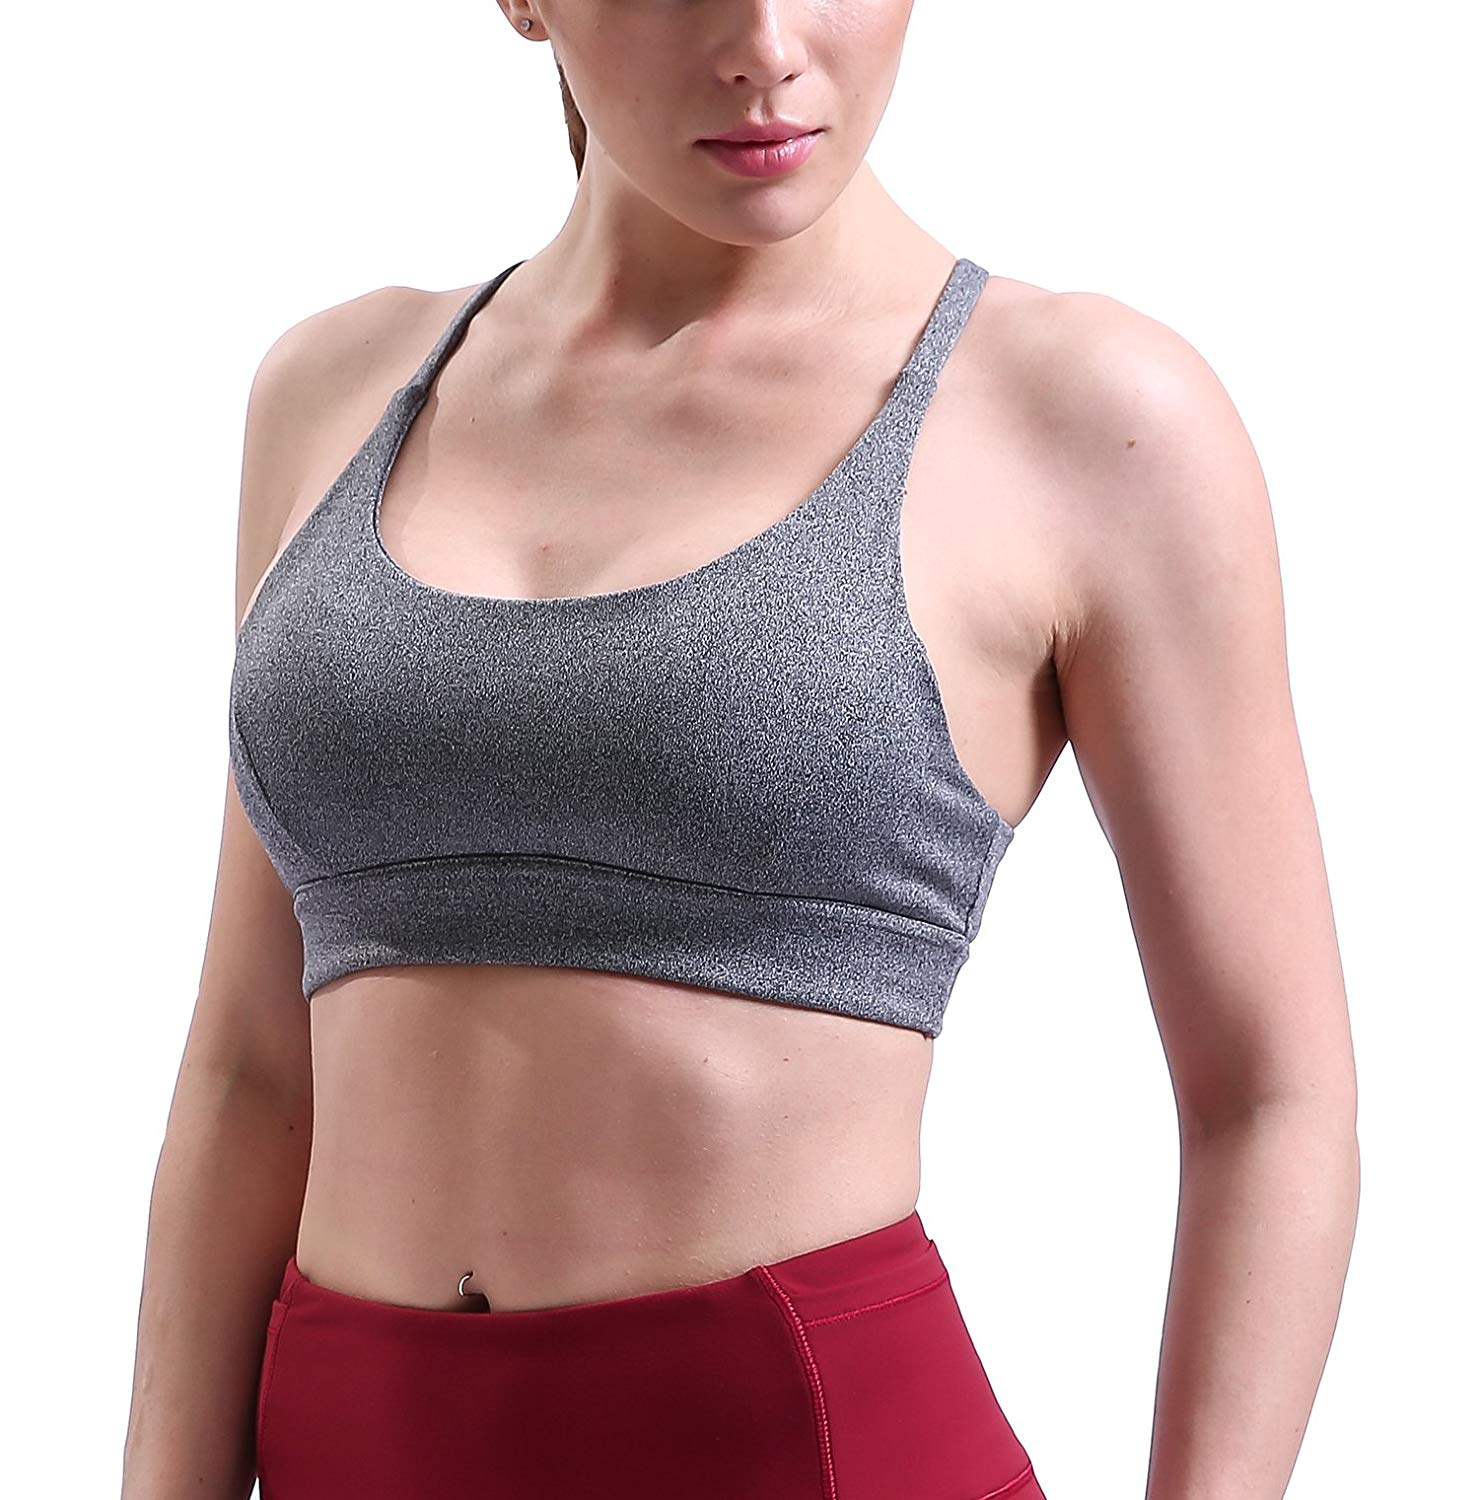 acb2b6e768 Get Quotations · OVESPORT Padded Sports Bras for Women- Wirefree Mesh  Performance Racerback Bras Yoga Running Workout